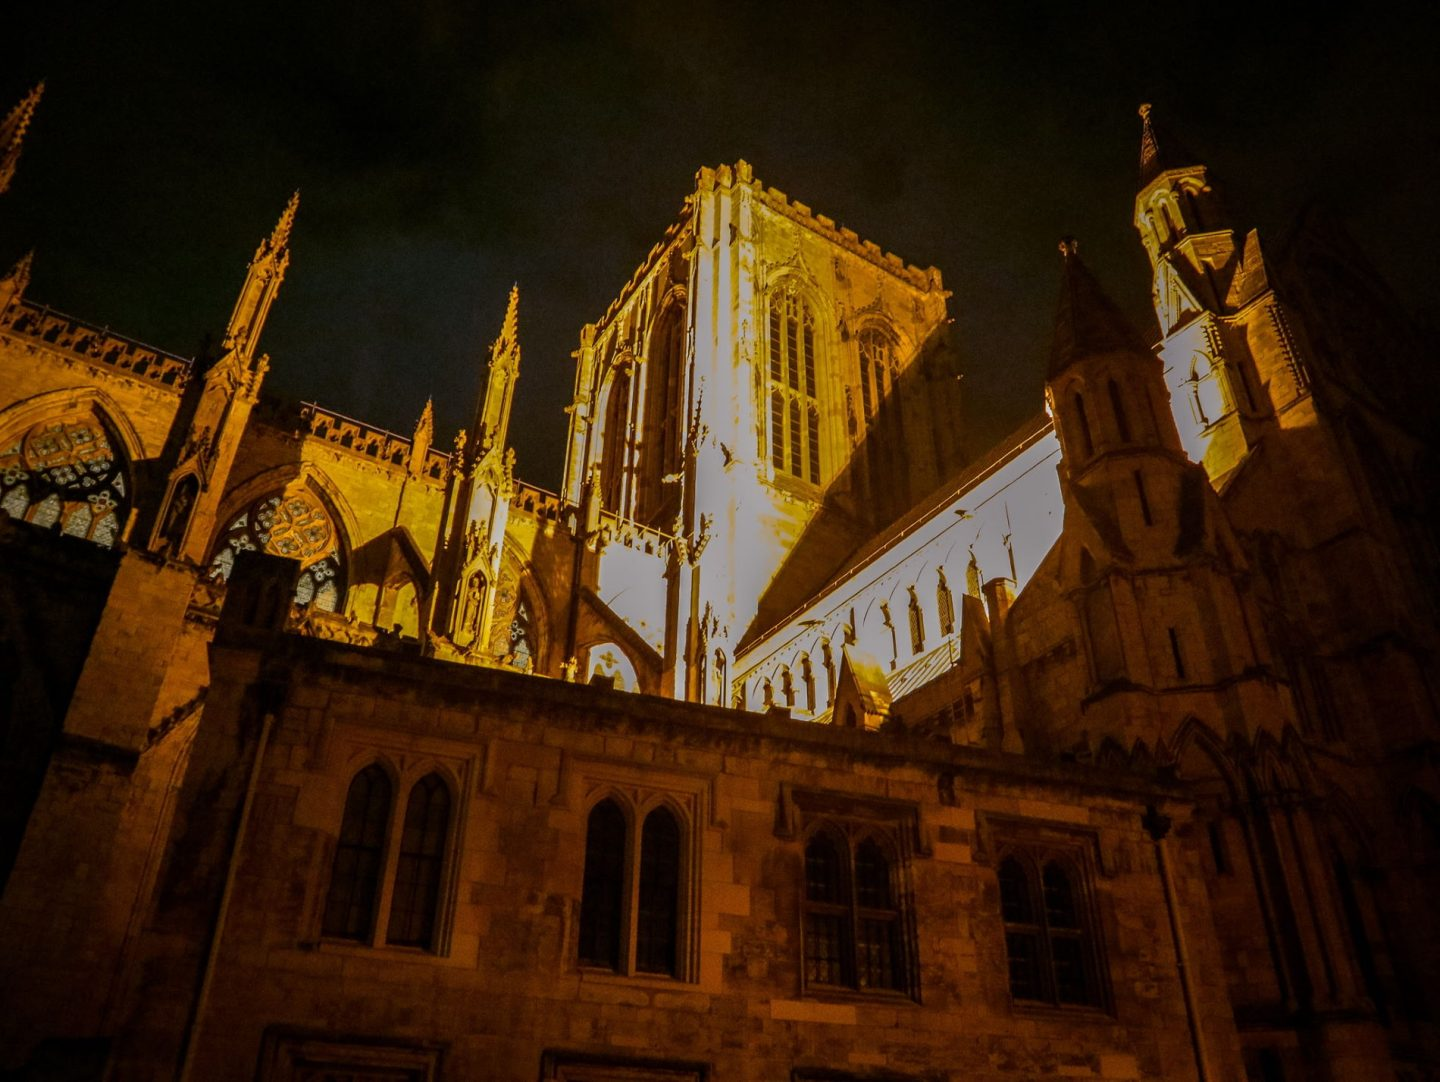 York Minster casts a spooky shadow over the city of York at night